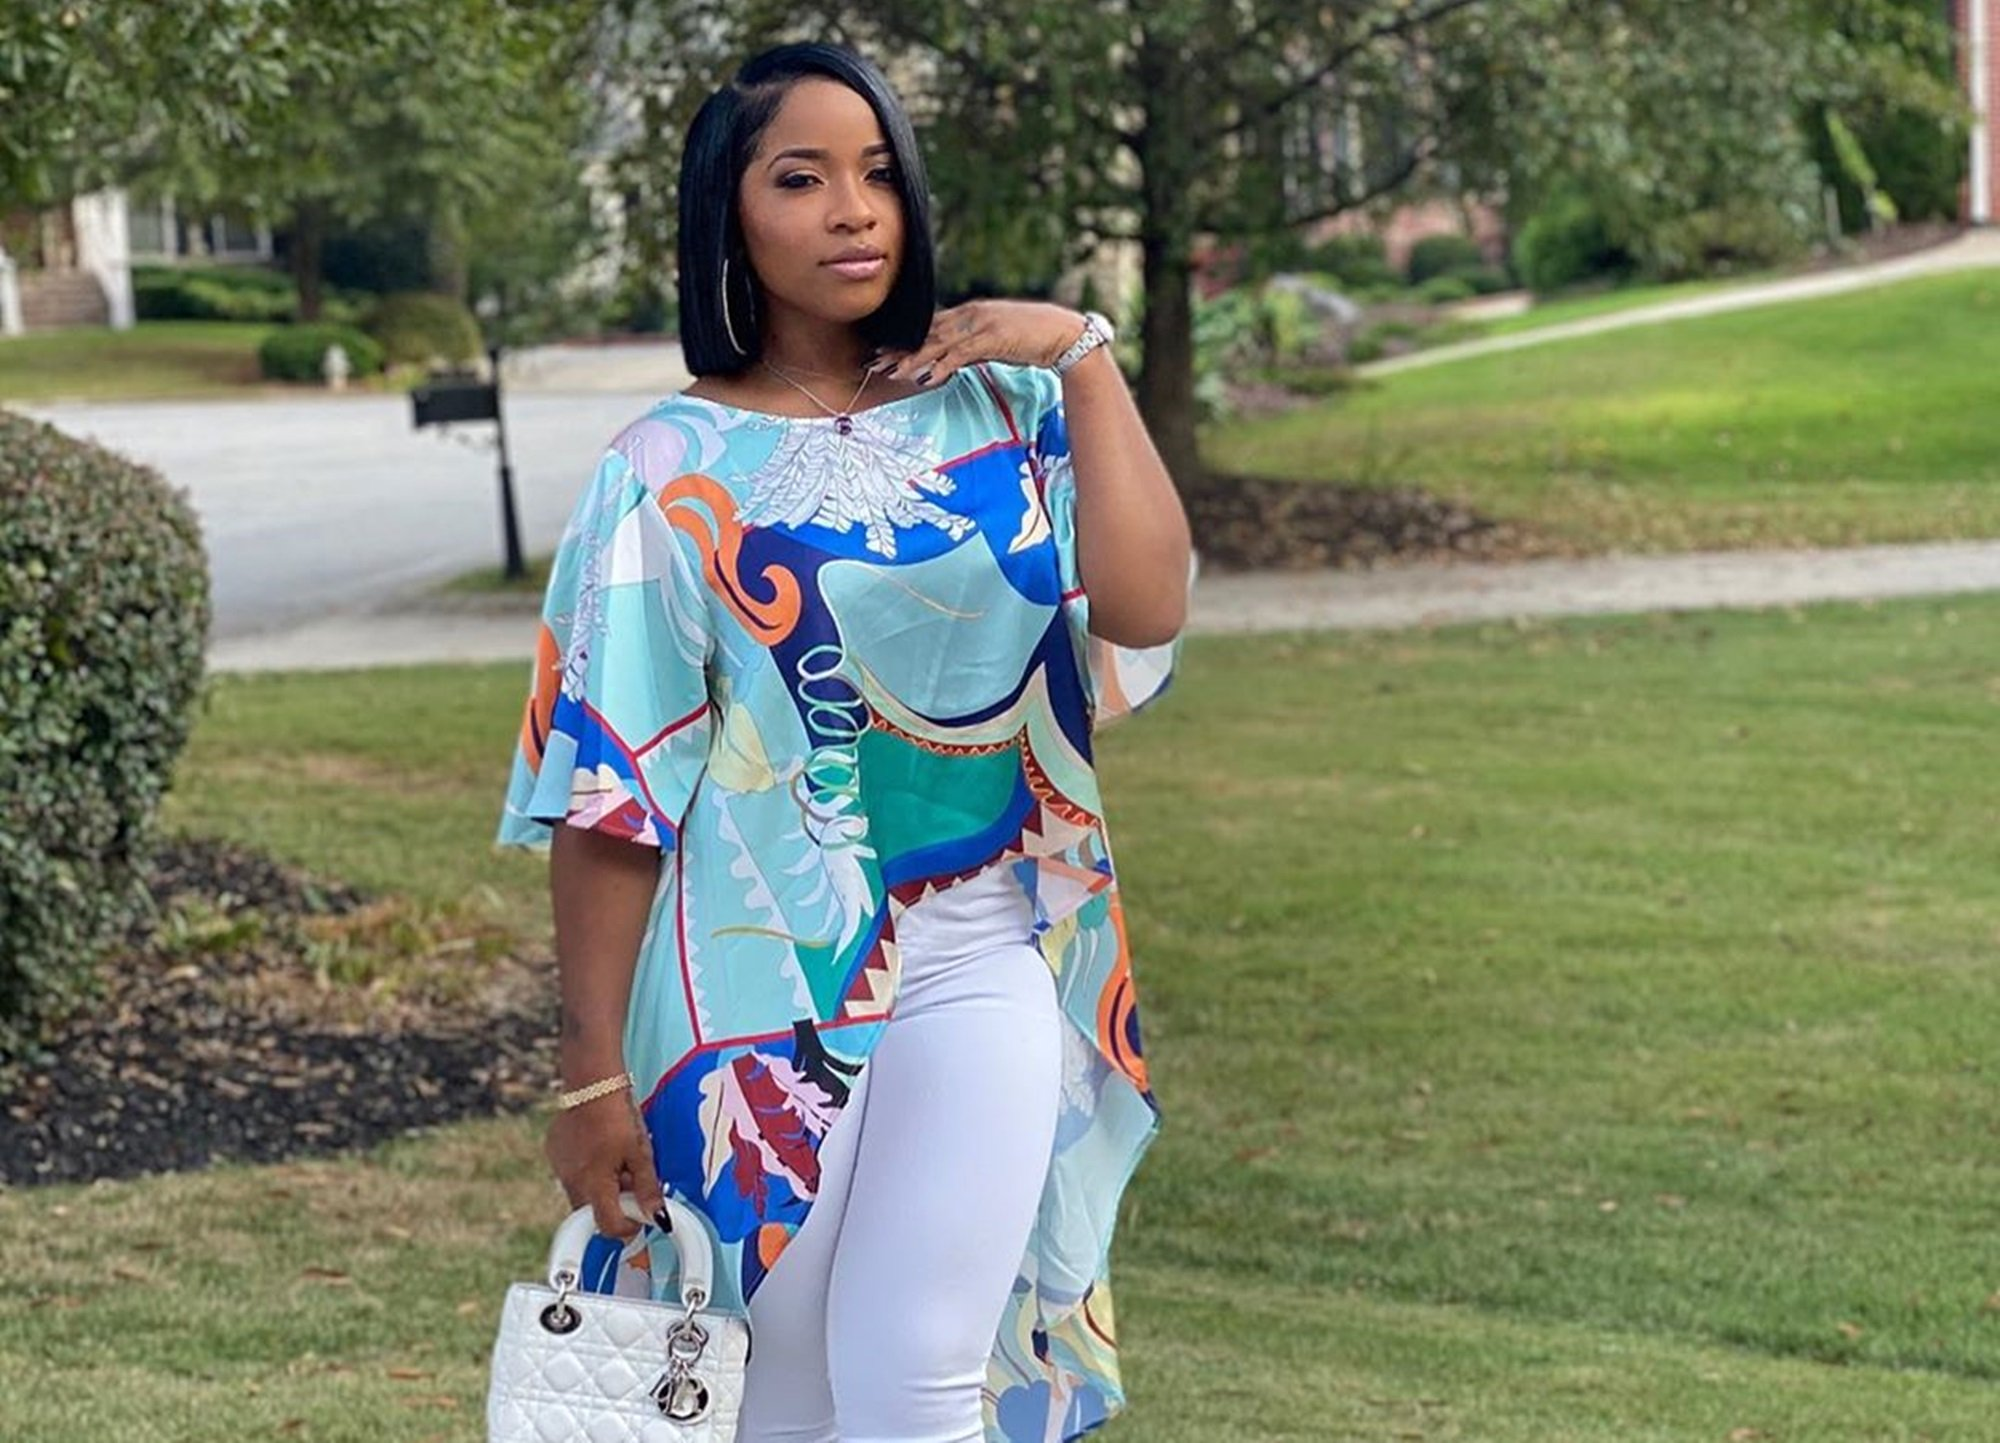 Toya Johnson Is Proud Of Her Little Workout Buddy - Can You Guess Who It Is? See The Video!